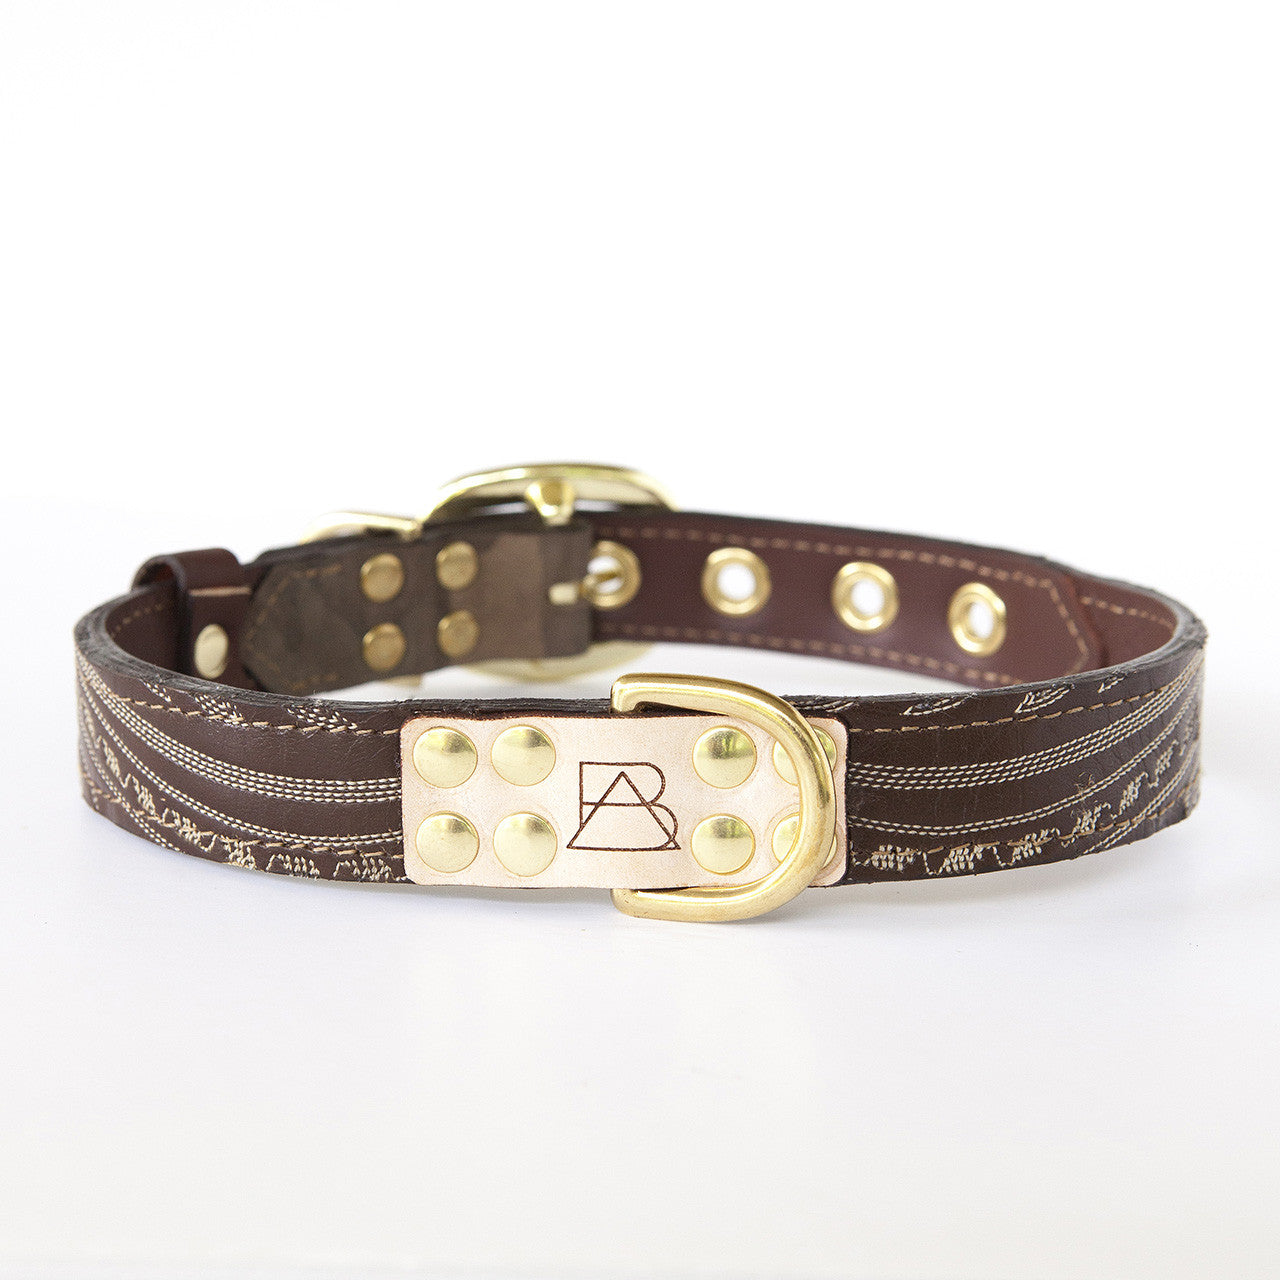 Camo Dog Collar with Chocolate Leather + Ivory Swirl Stitching (front view)